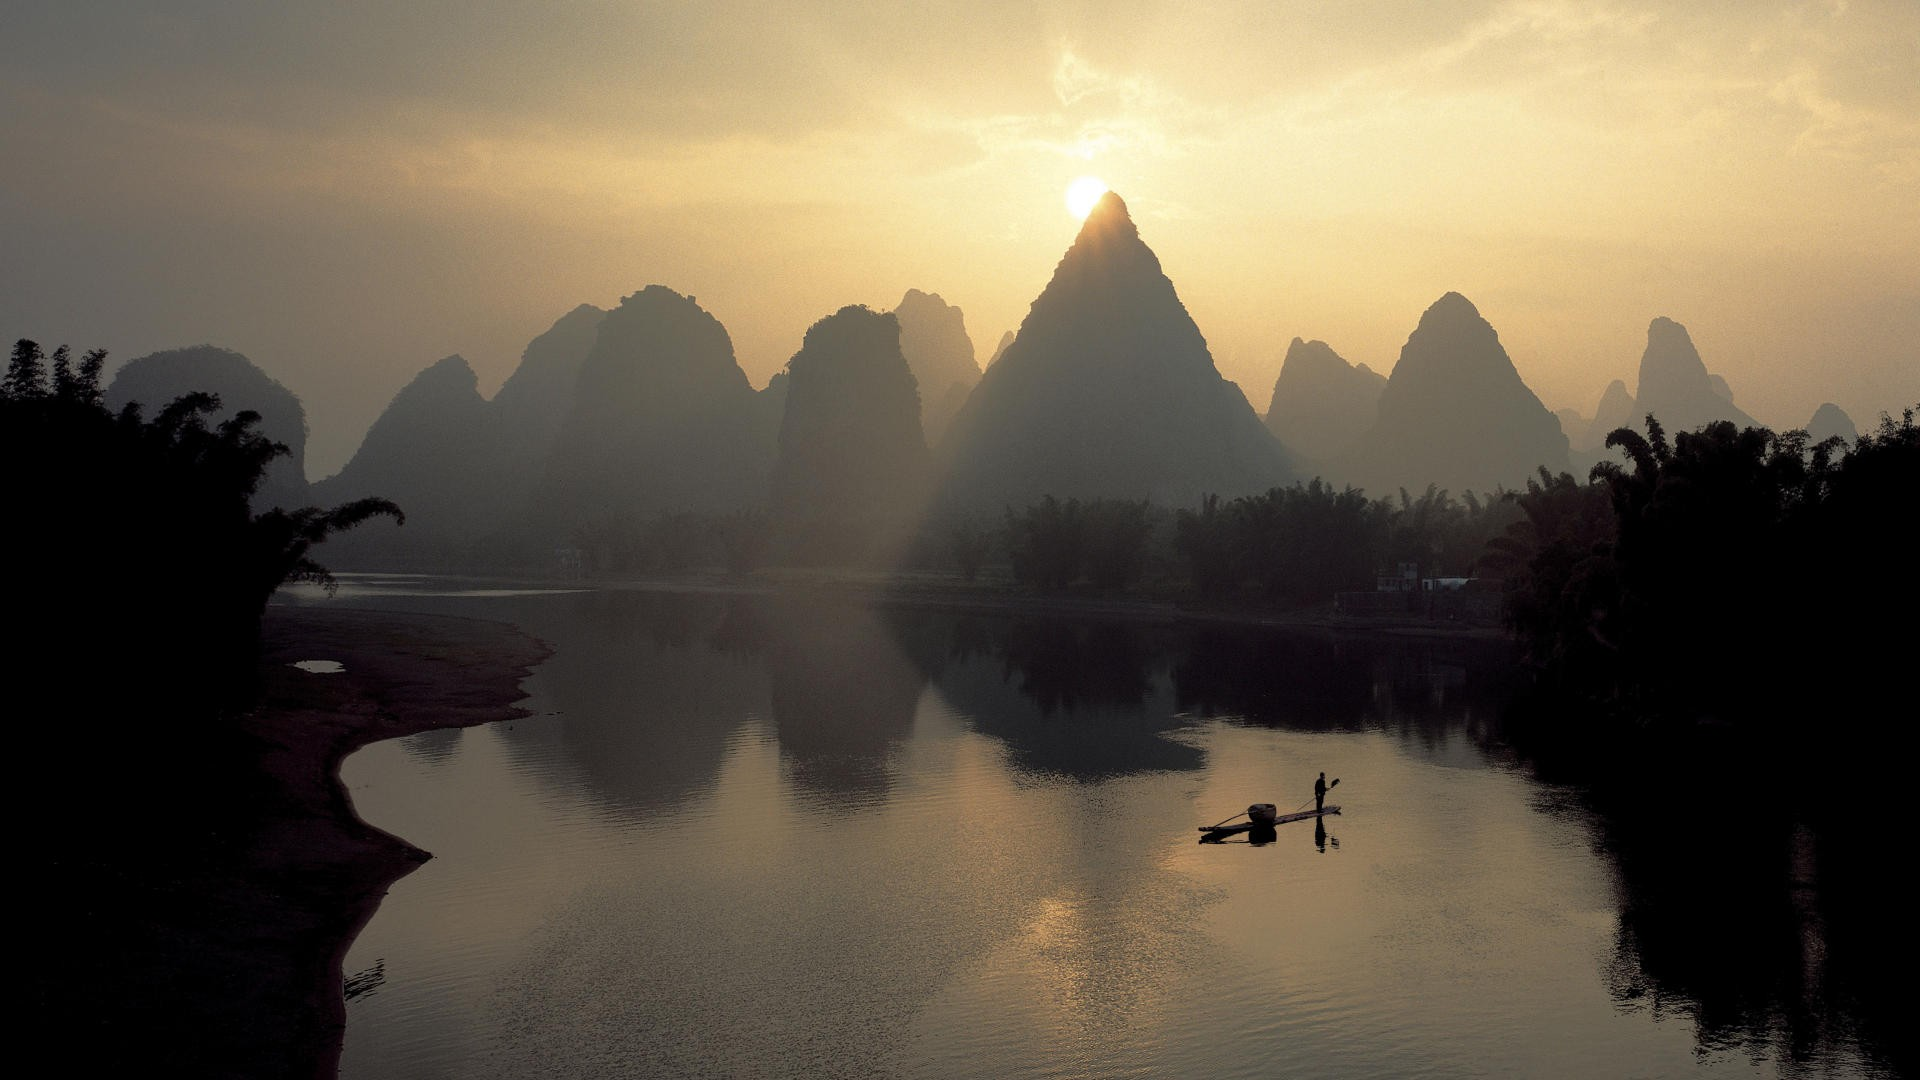 China Landscape Wallpaper - WallpaperSafari